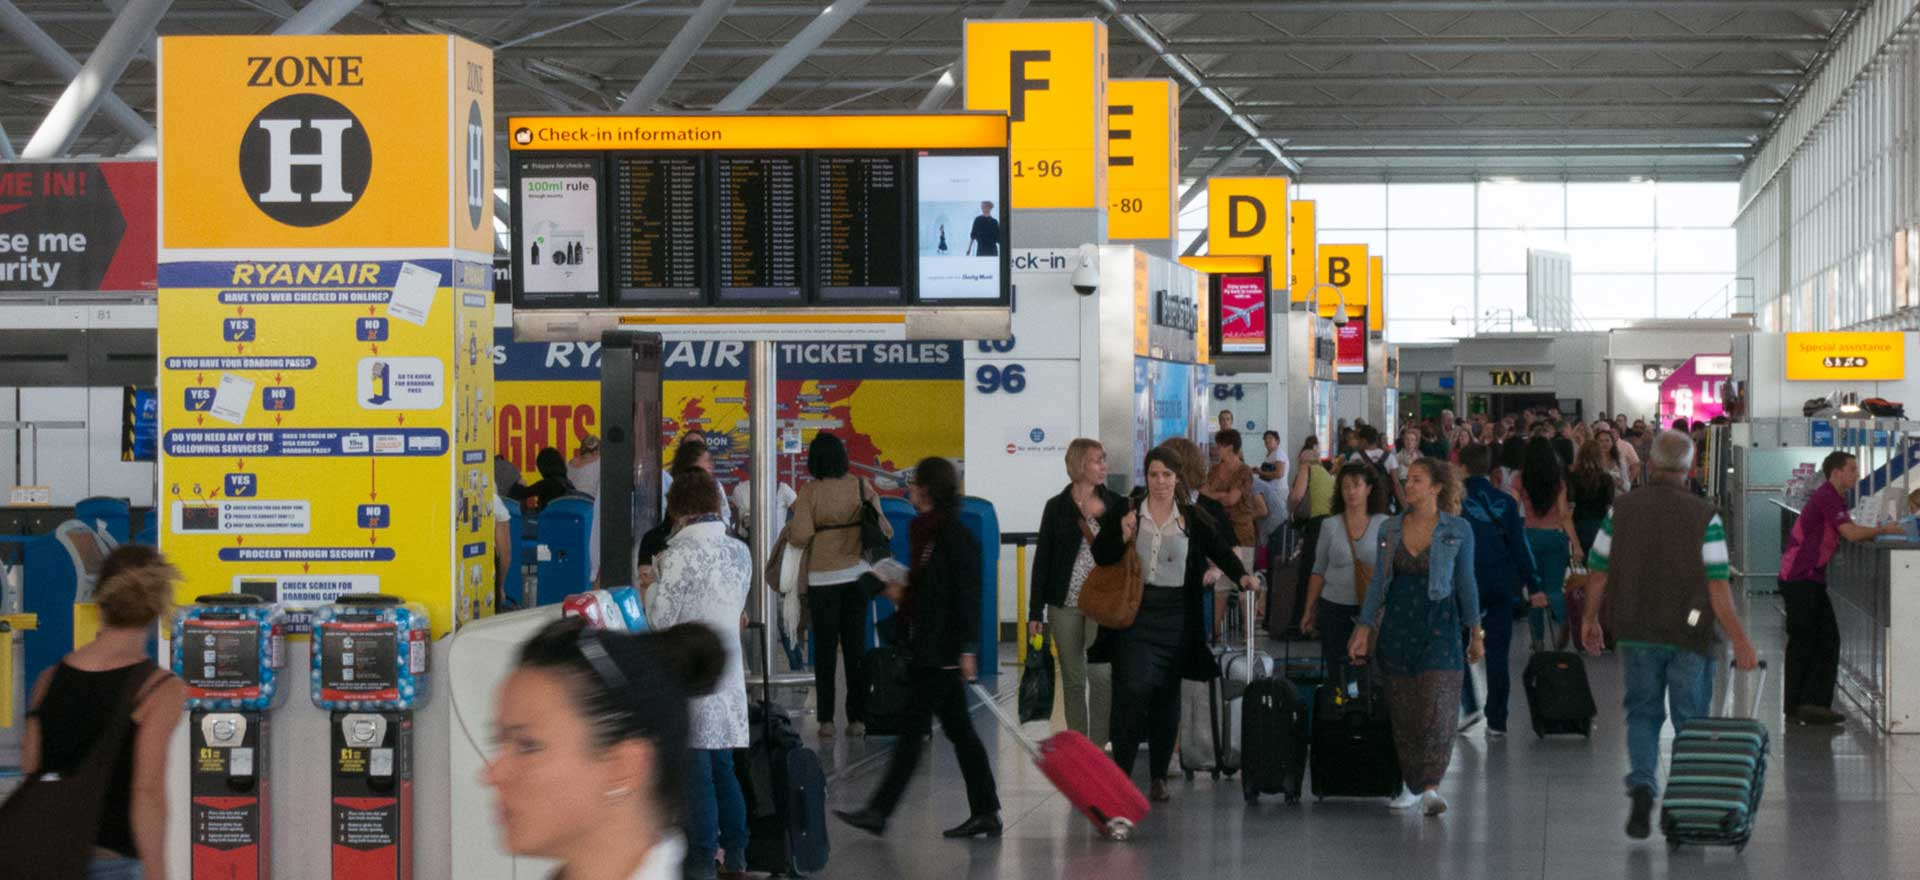 Inside Stansted airport